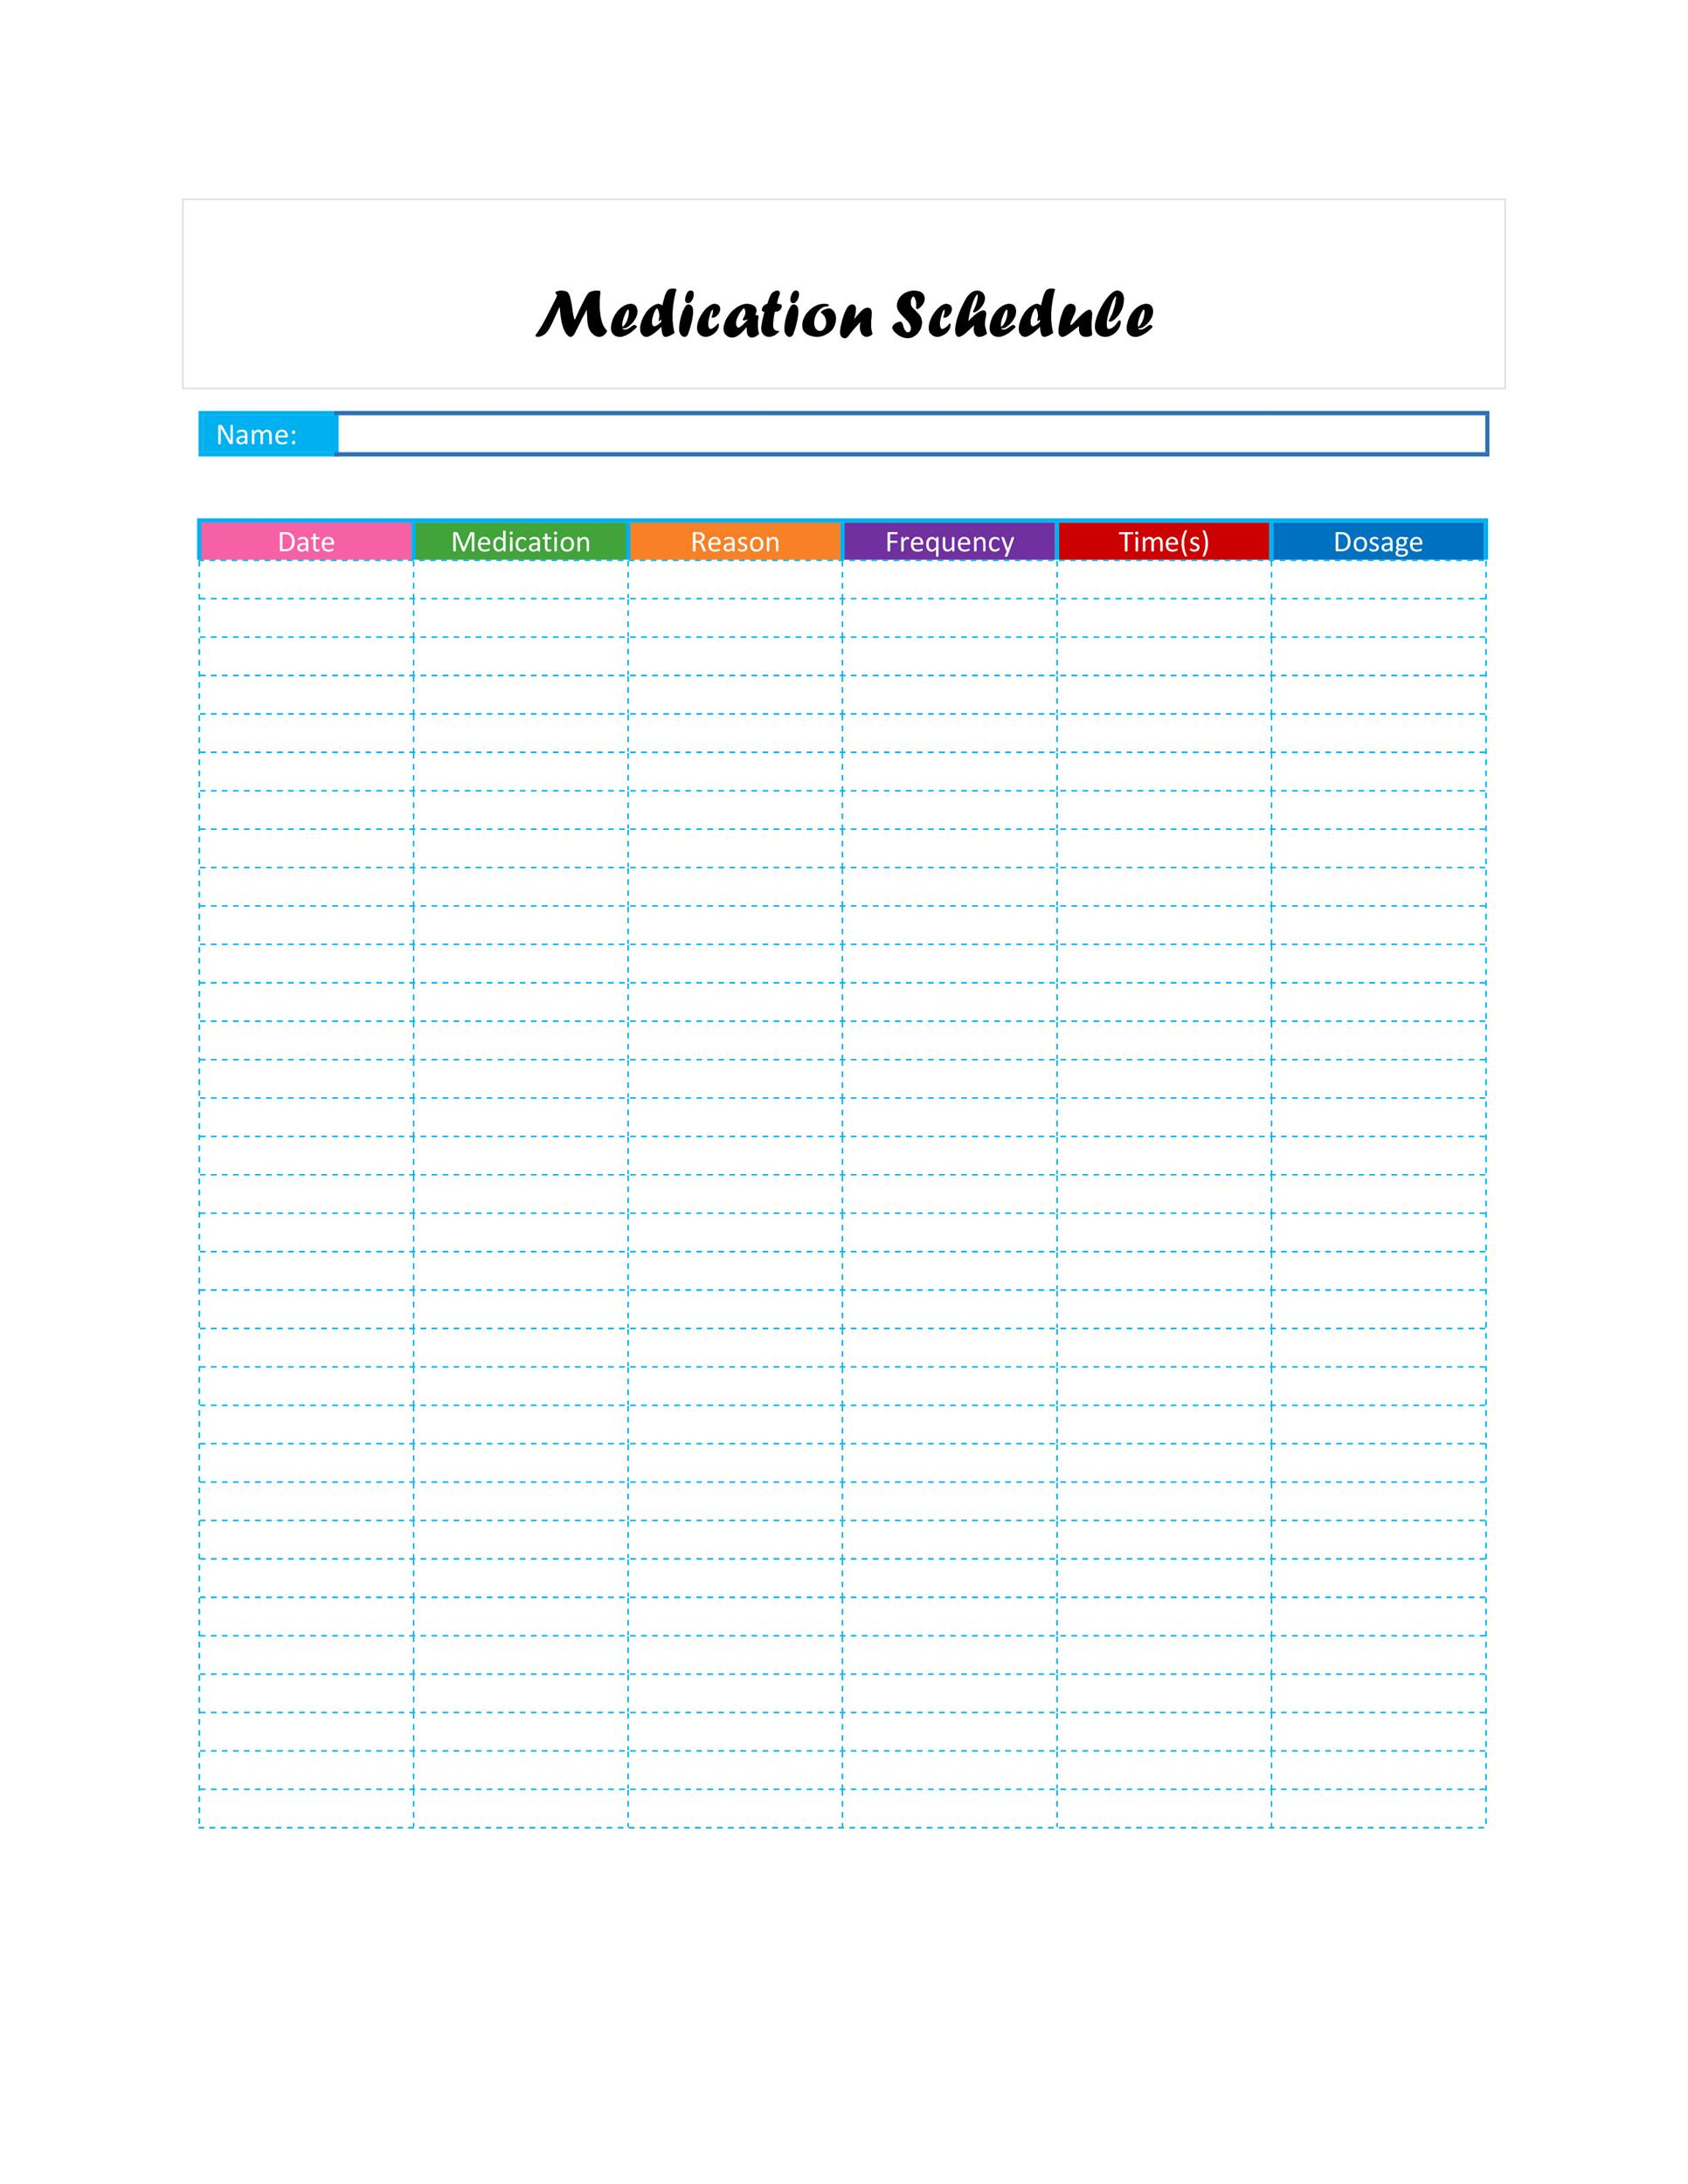 Free medication schedule template 34